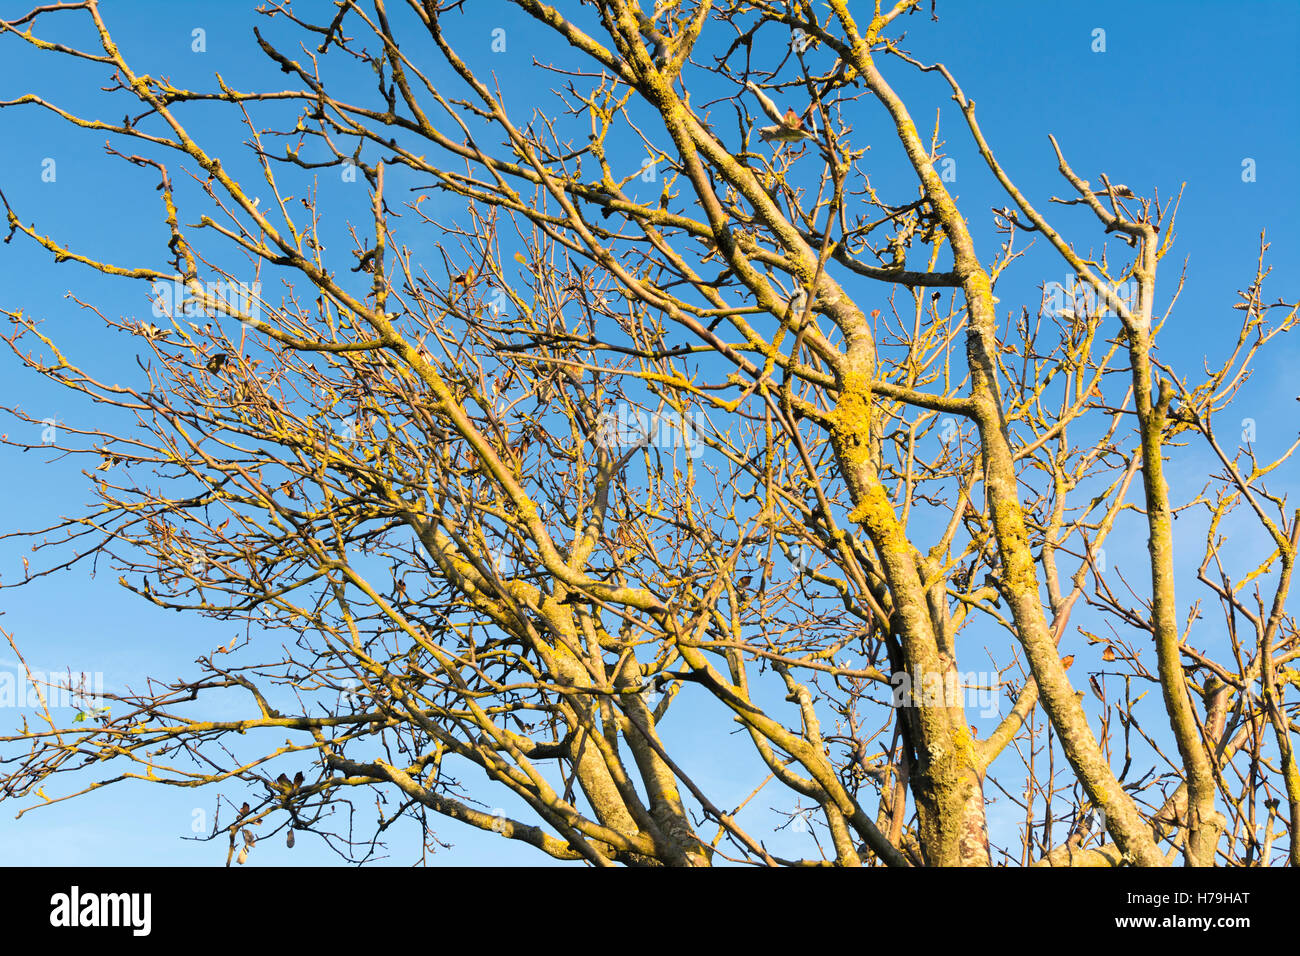 Tree branches bare of leaves at the start of Winter, against blue sky. - Stock Image